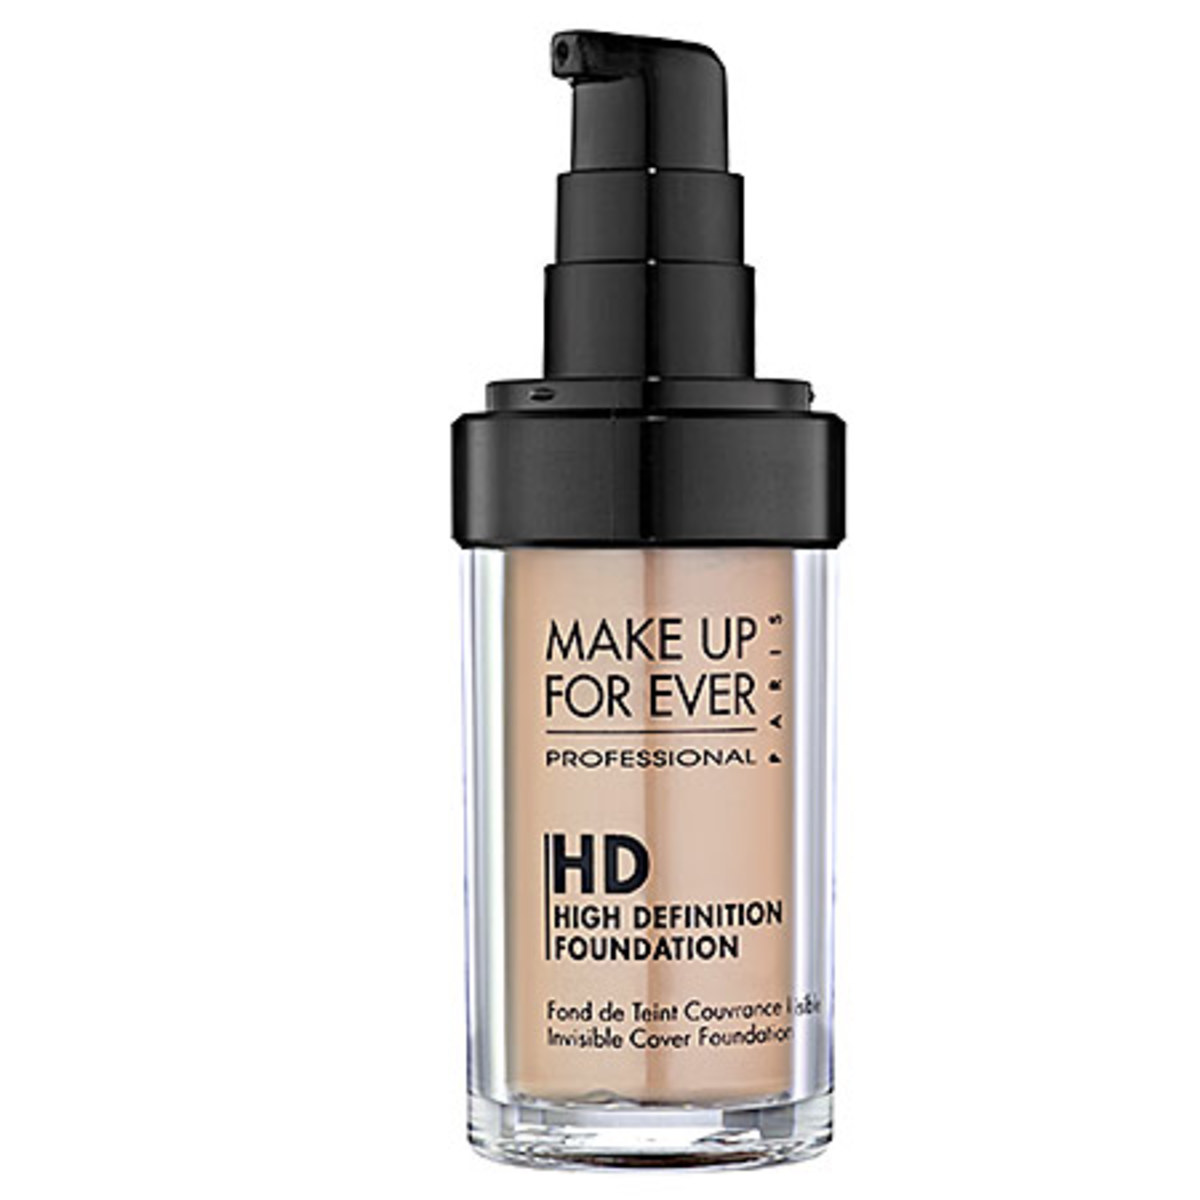 Make Up For Ever HD Invisible Cover Foundation in 125 Sand